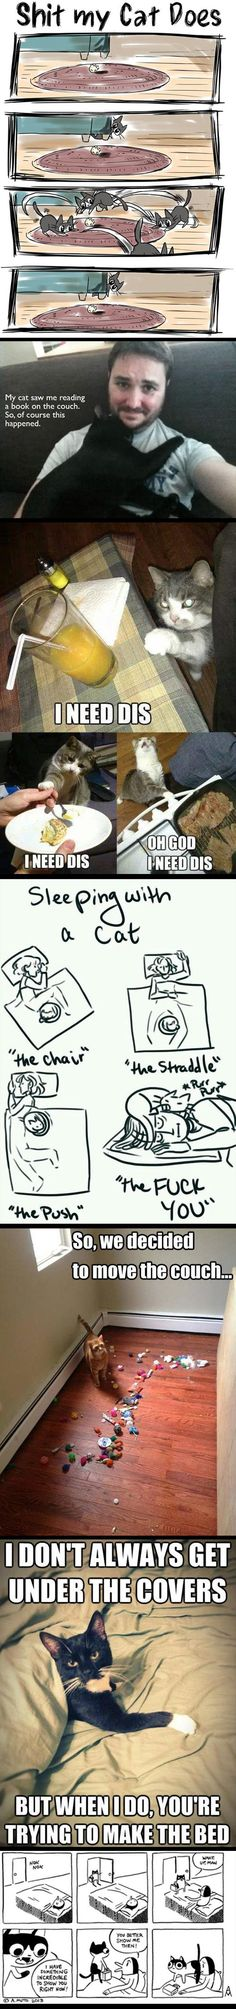 Cats owners will understand